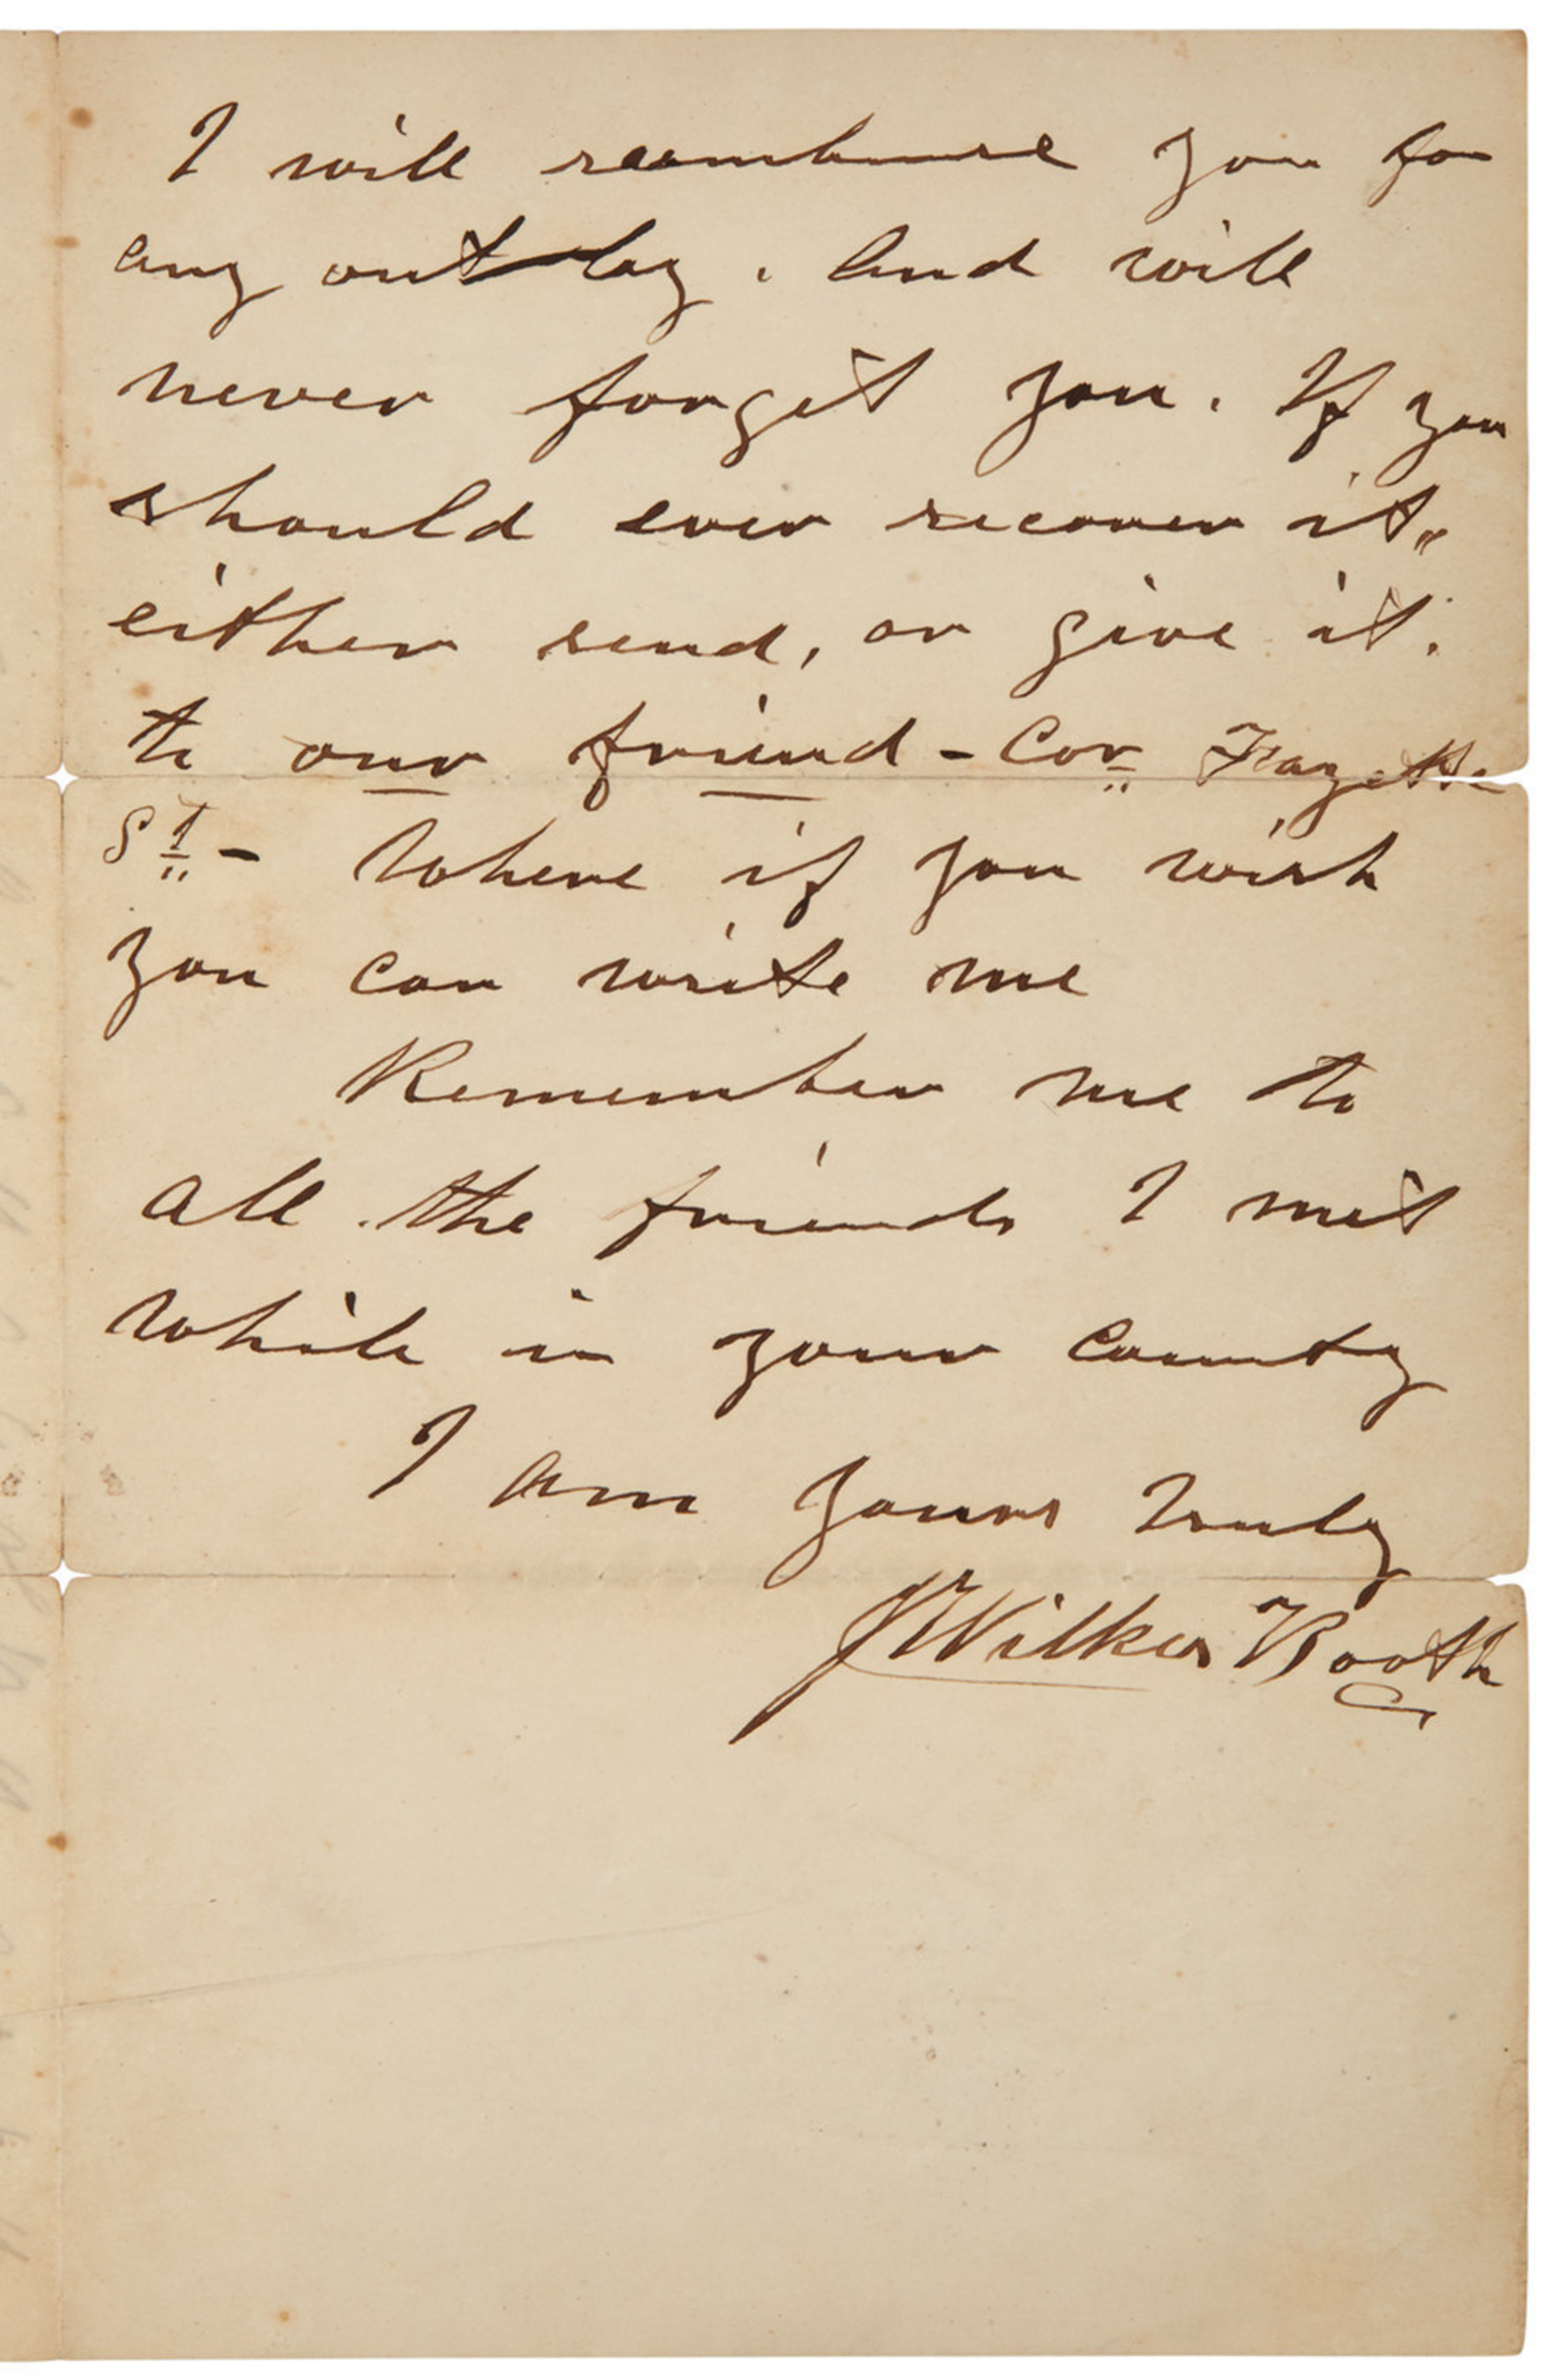 A letter by Lincoln assassin John Wilkes Booth dated November 14, 1864.